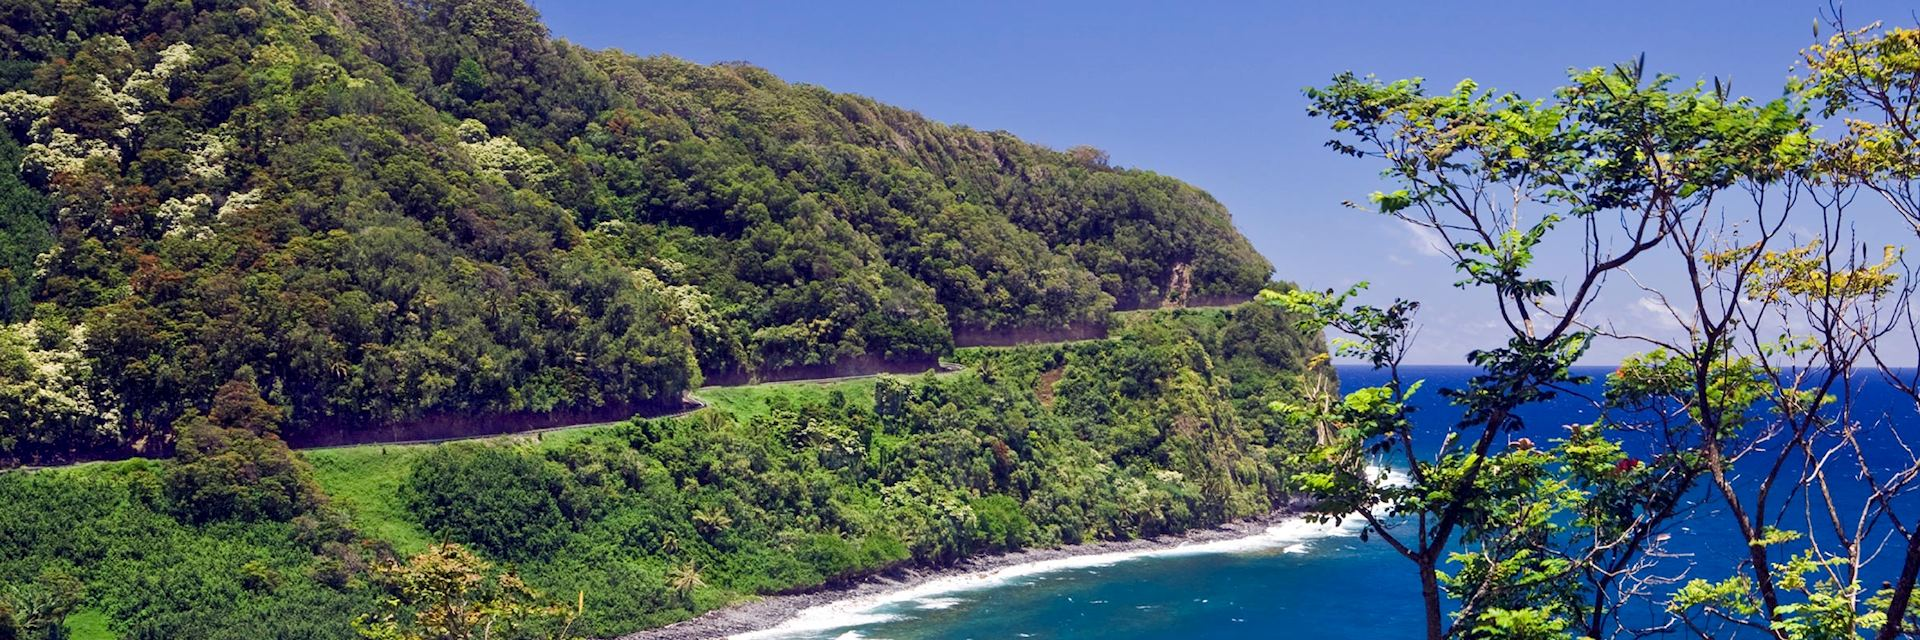 The road to Hana, Maui